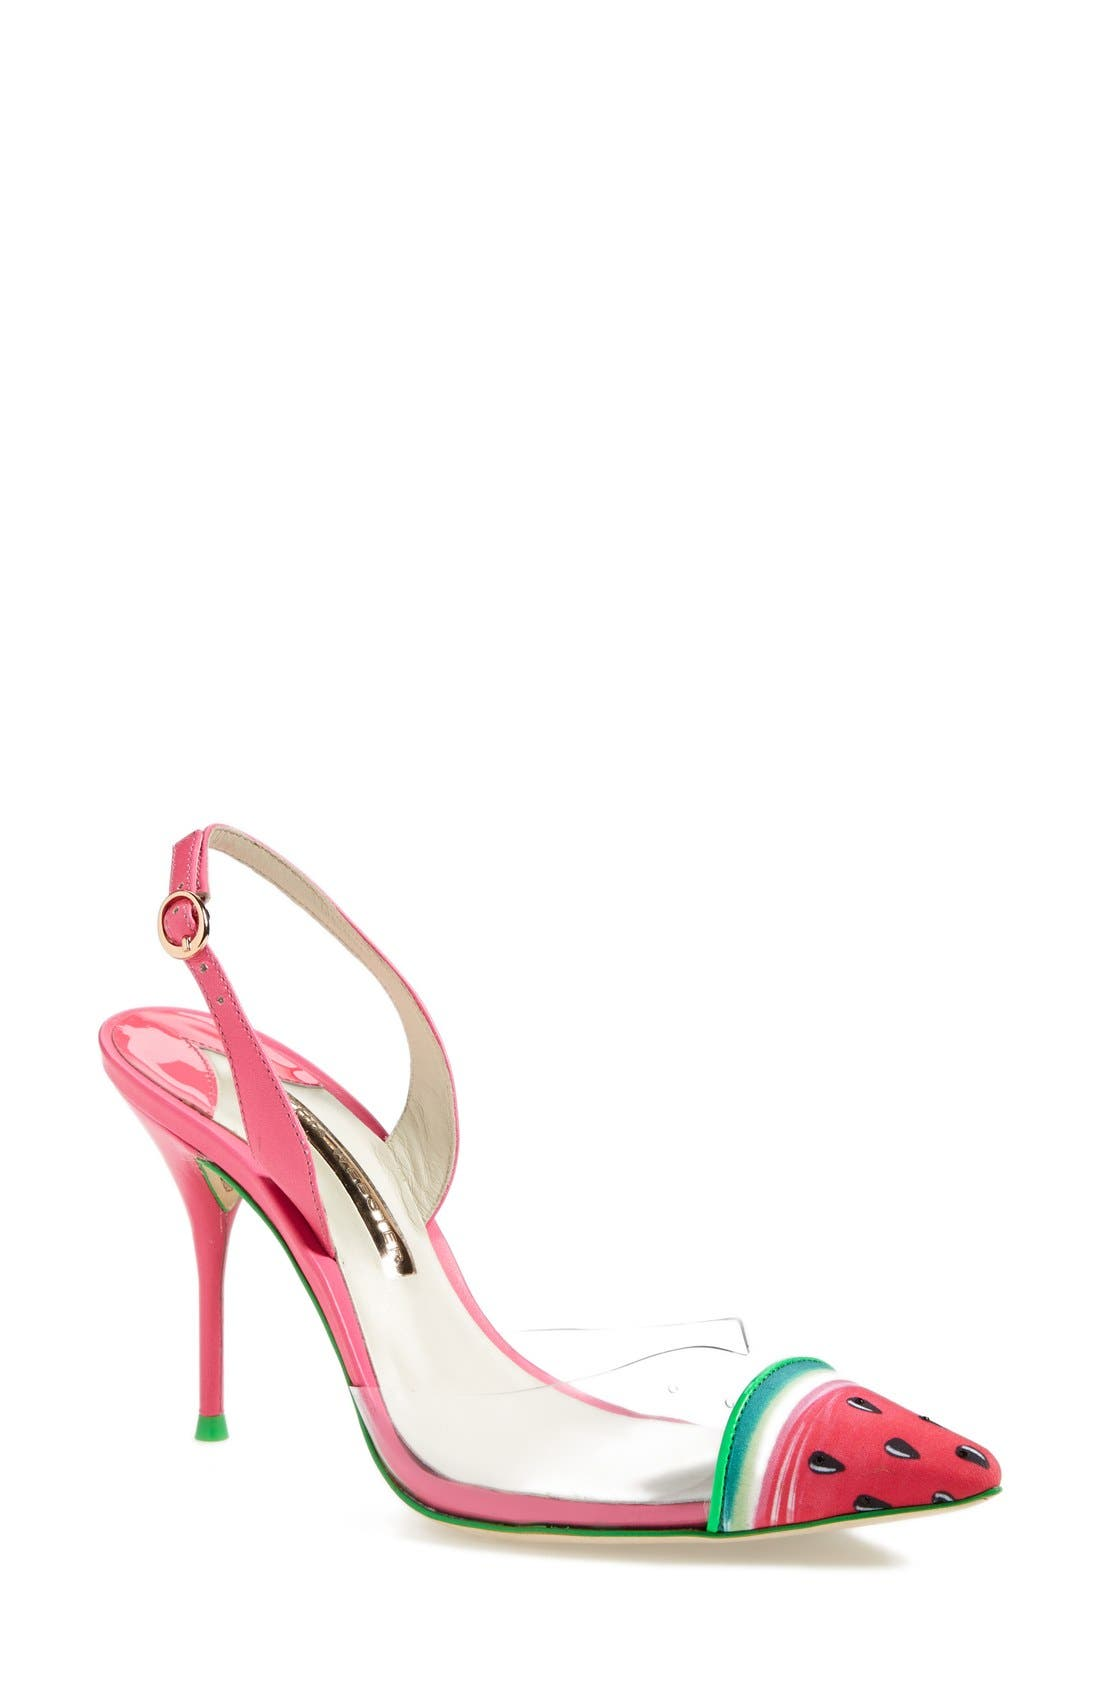 Main Image - Sophia Webster 'Daria' Pointy Toe Pump (Women)